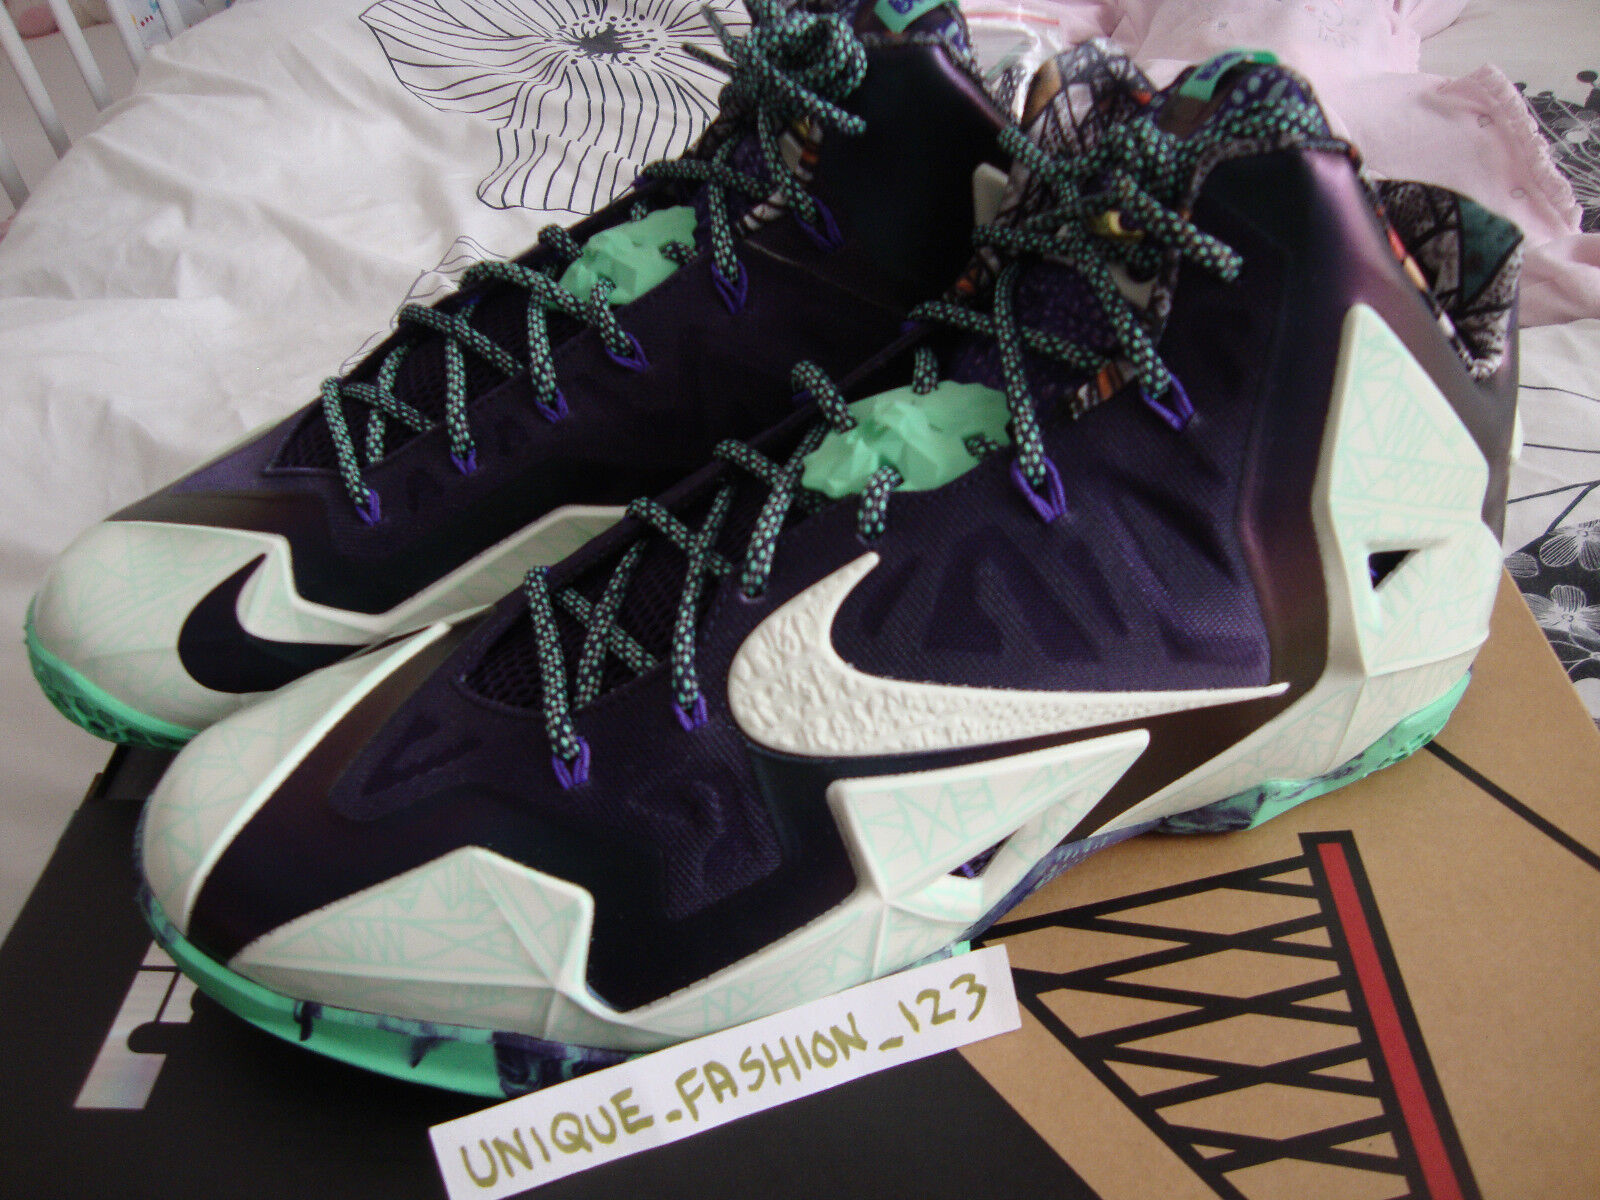 NIKE LEBRON XI 11 ALL STAR US 15 AS GUMBO LEAGUE GATOR KING 2014 KD 6